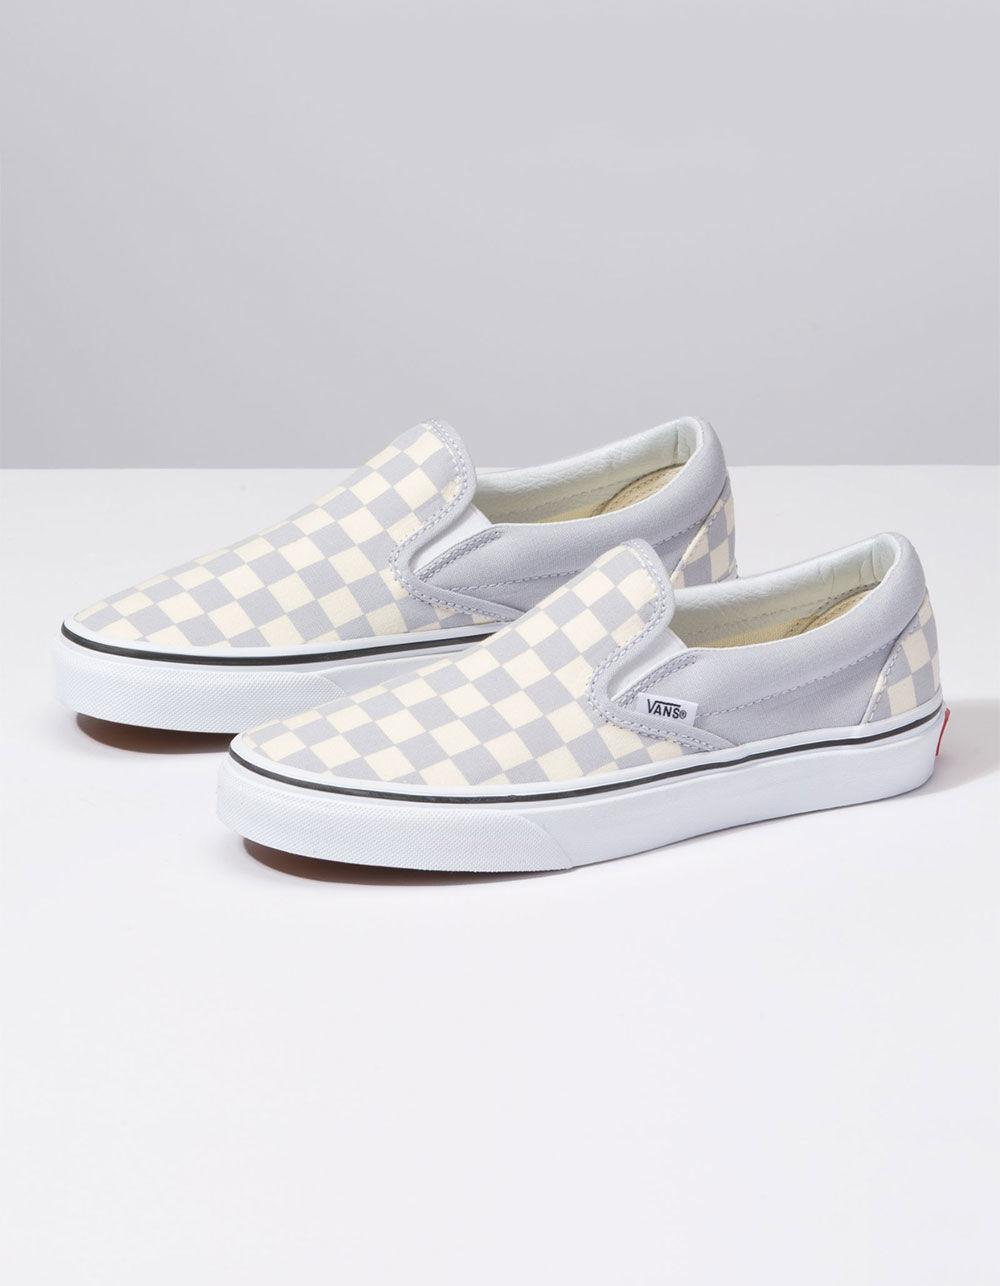 ac2d1915a881 Lyst - Vans Checkerboard Gray Dawn   True White Womens Slip-on Shoes in  White